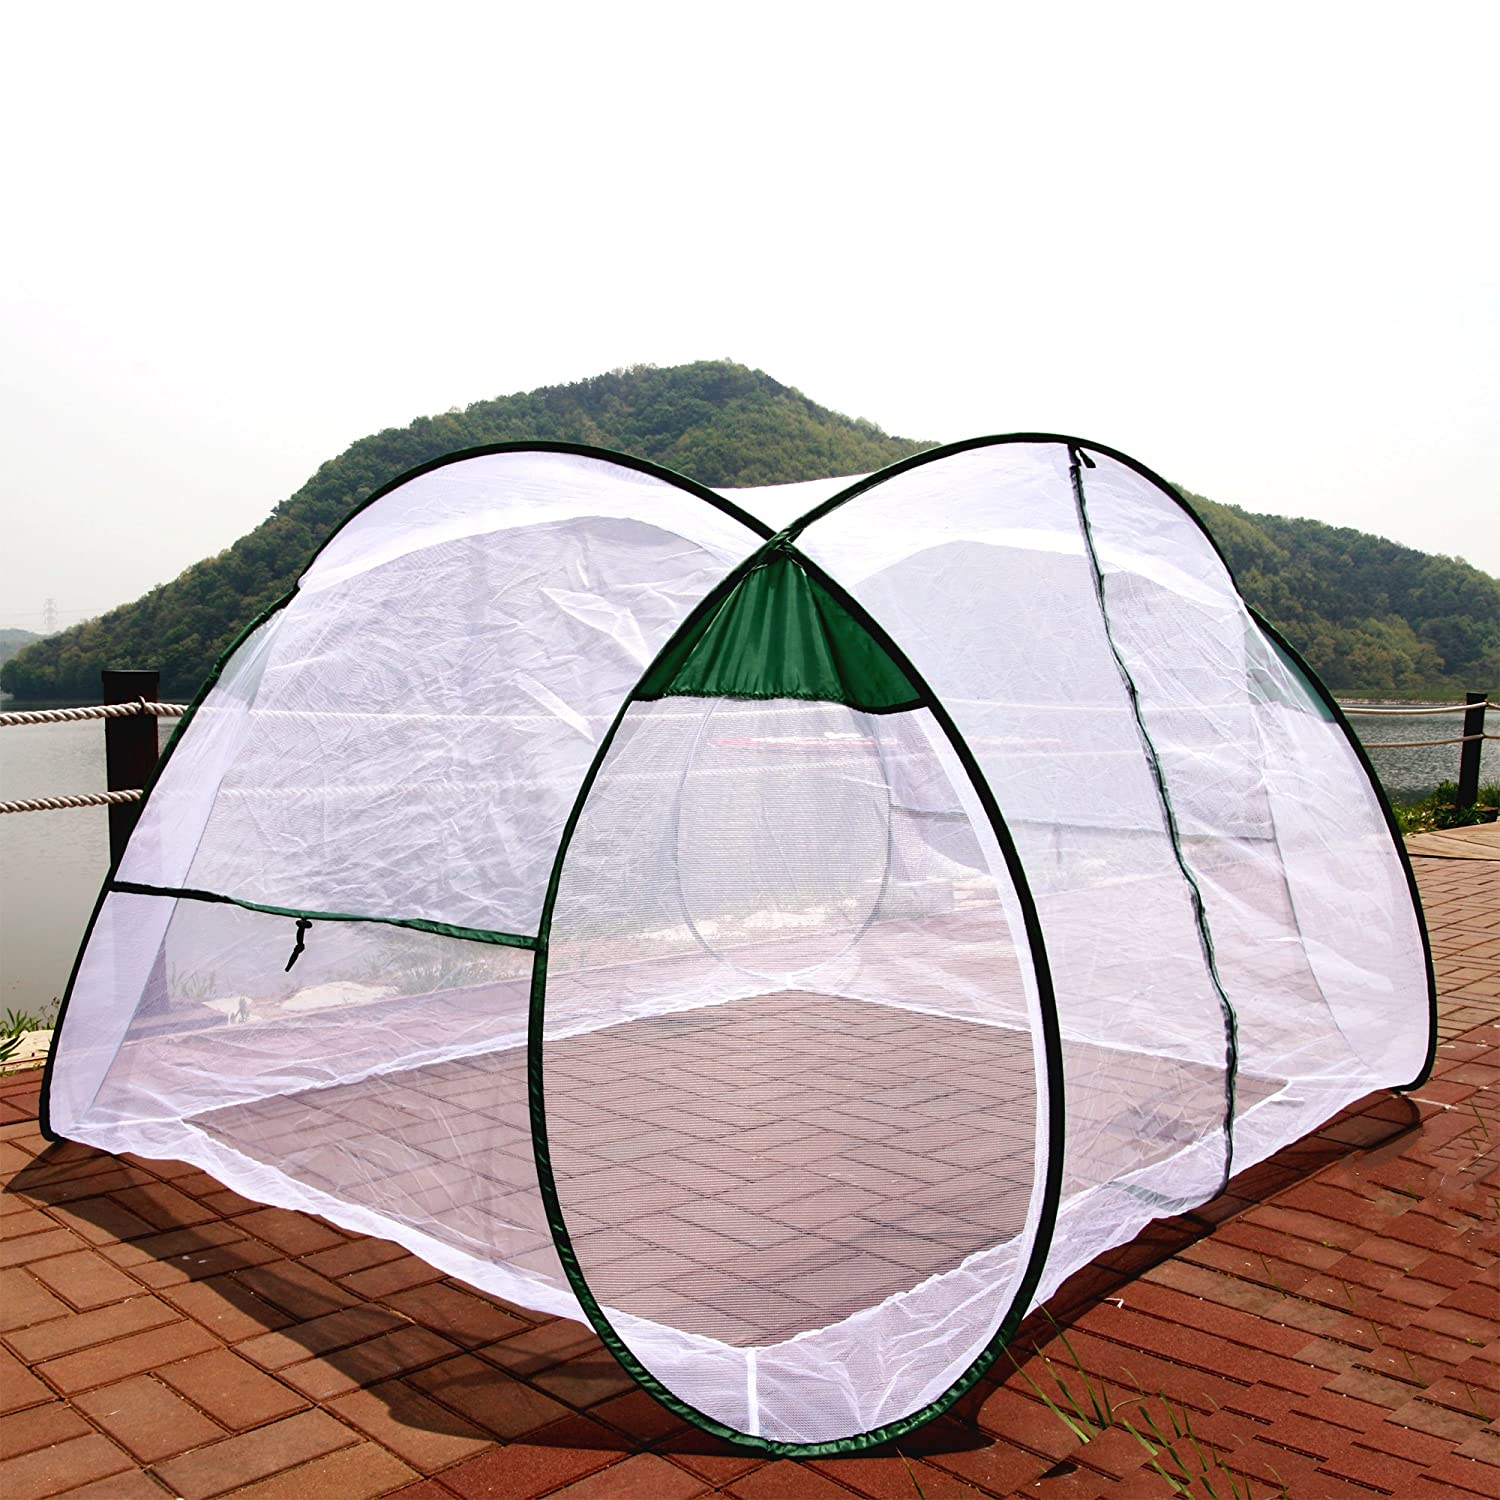 Amazon.com  SpeedTent Portable Foldable Mosquito Net Tent Insect protection nets Anti-Bug Net 4~5 Person net tents  Baby  sc 1 st  Amazon.com & Amazon.com : SpeedTent Portable Foldable Mosquito Net Tent Insect ...